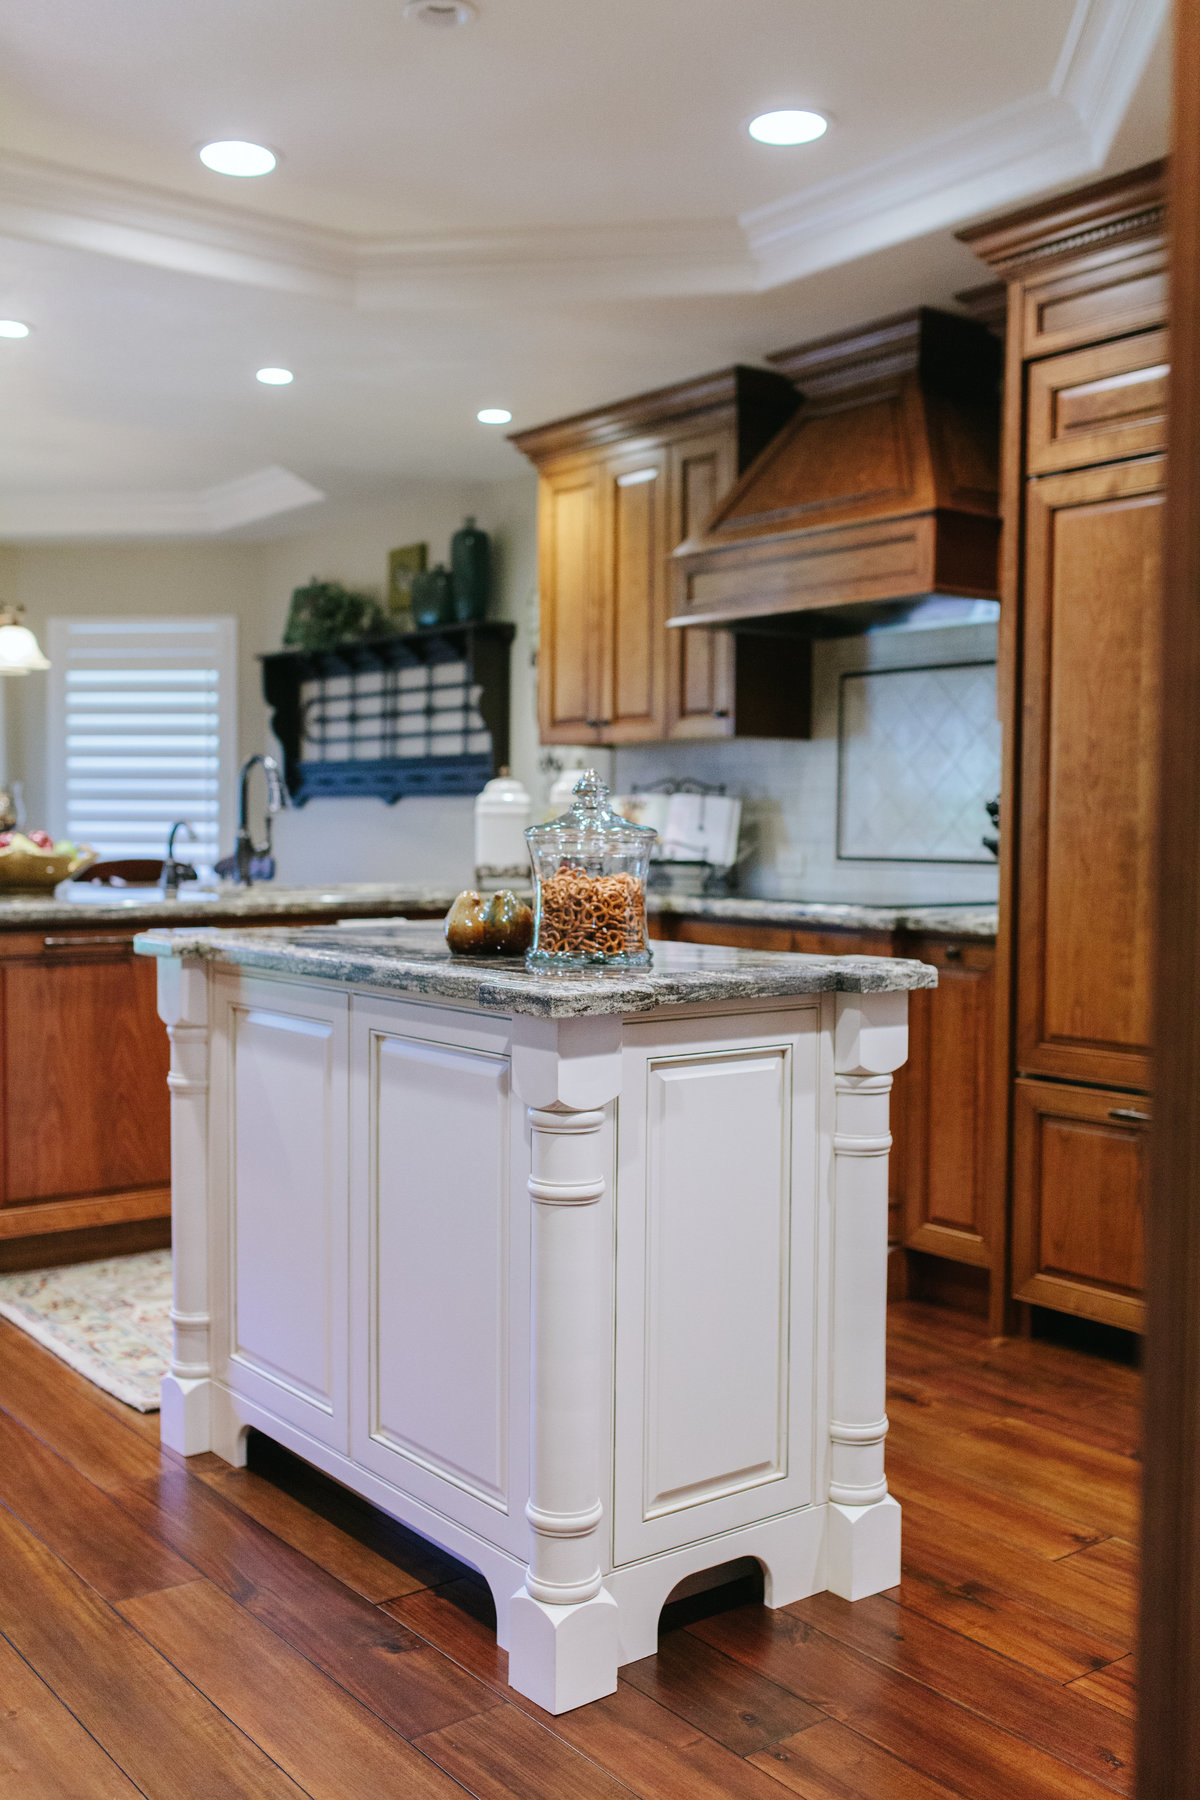 Custom Kitchen Cabinet - Cowan's Cabinet Co.